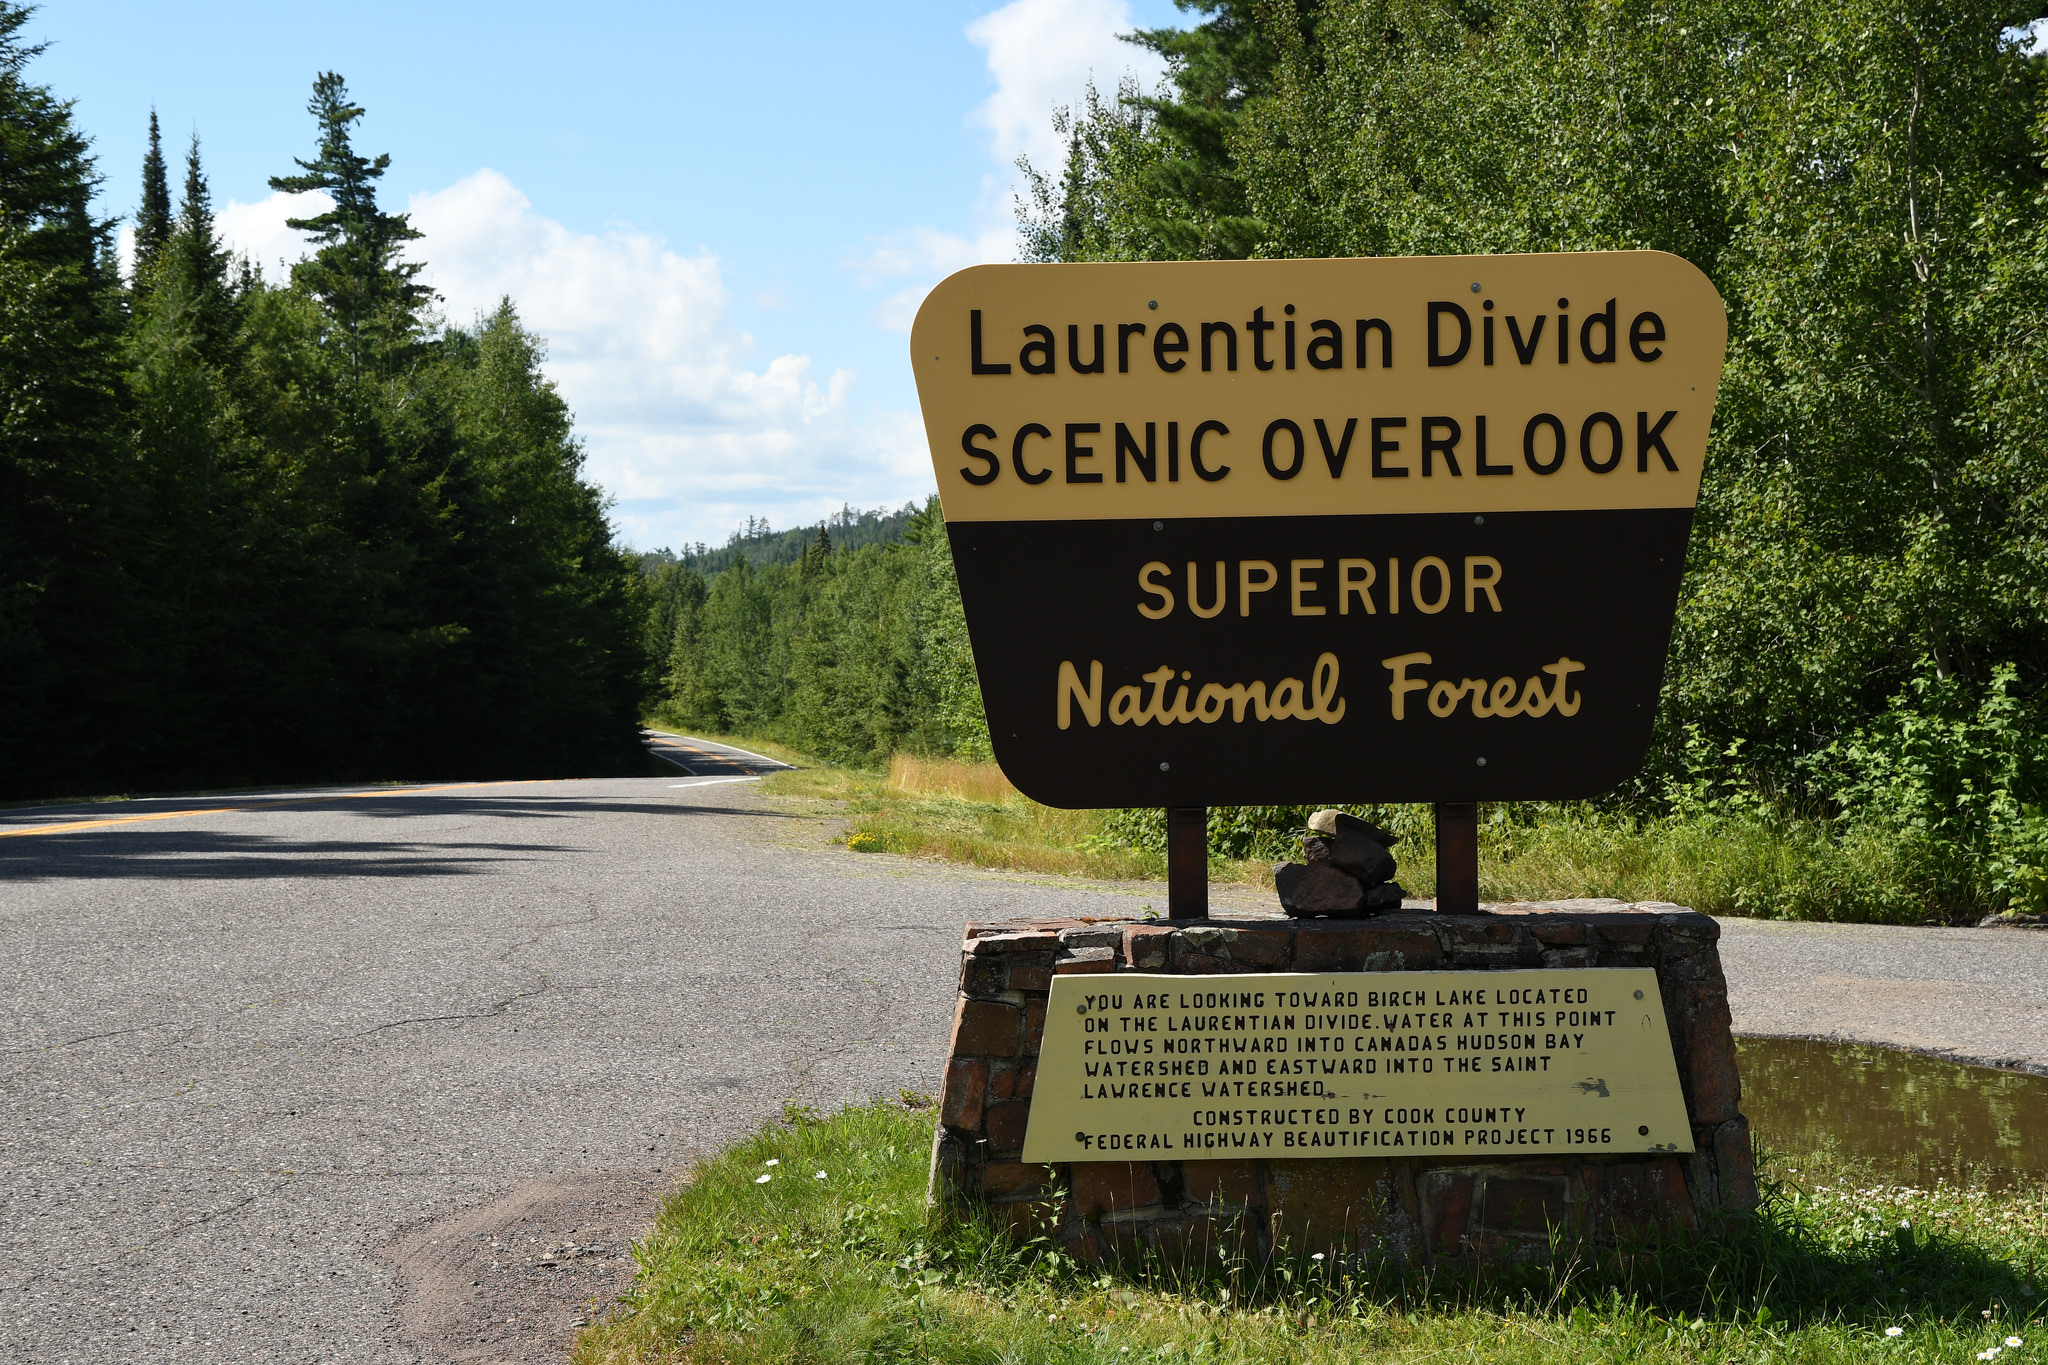 Laurentian Divide